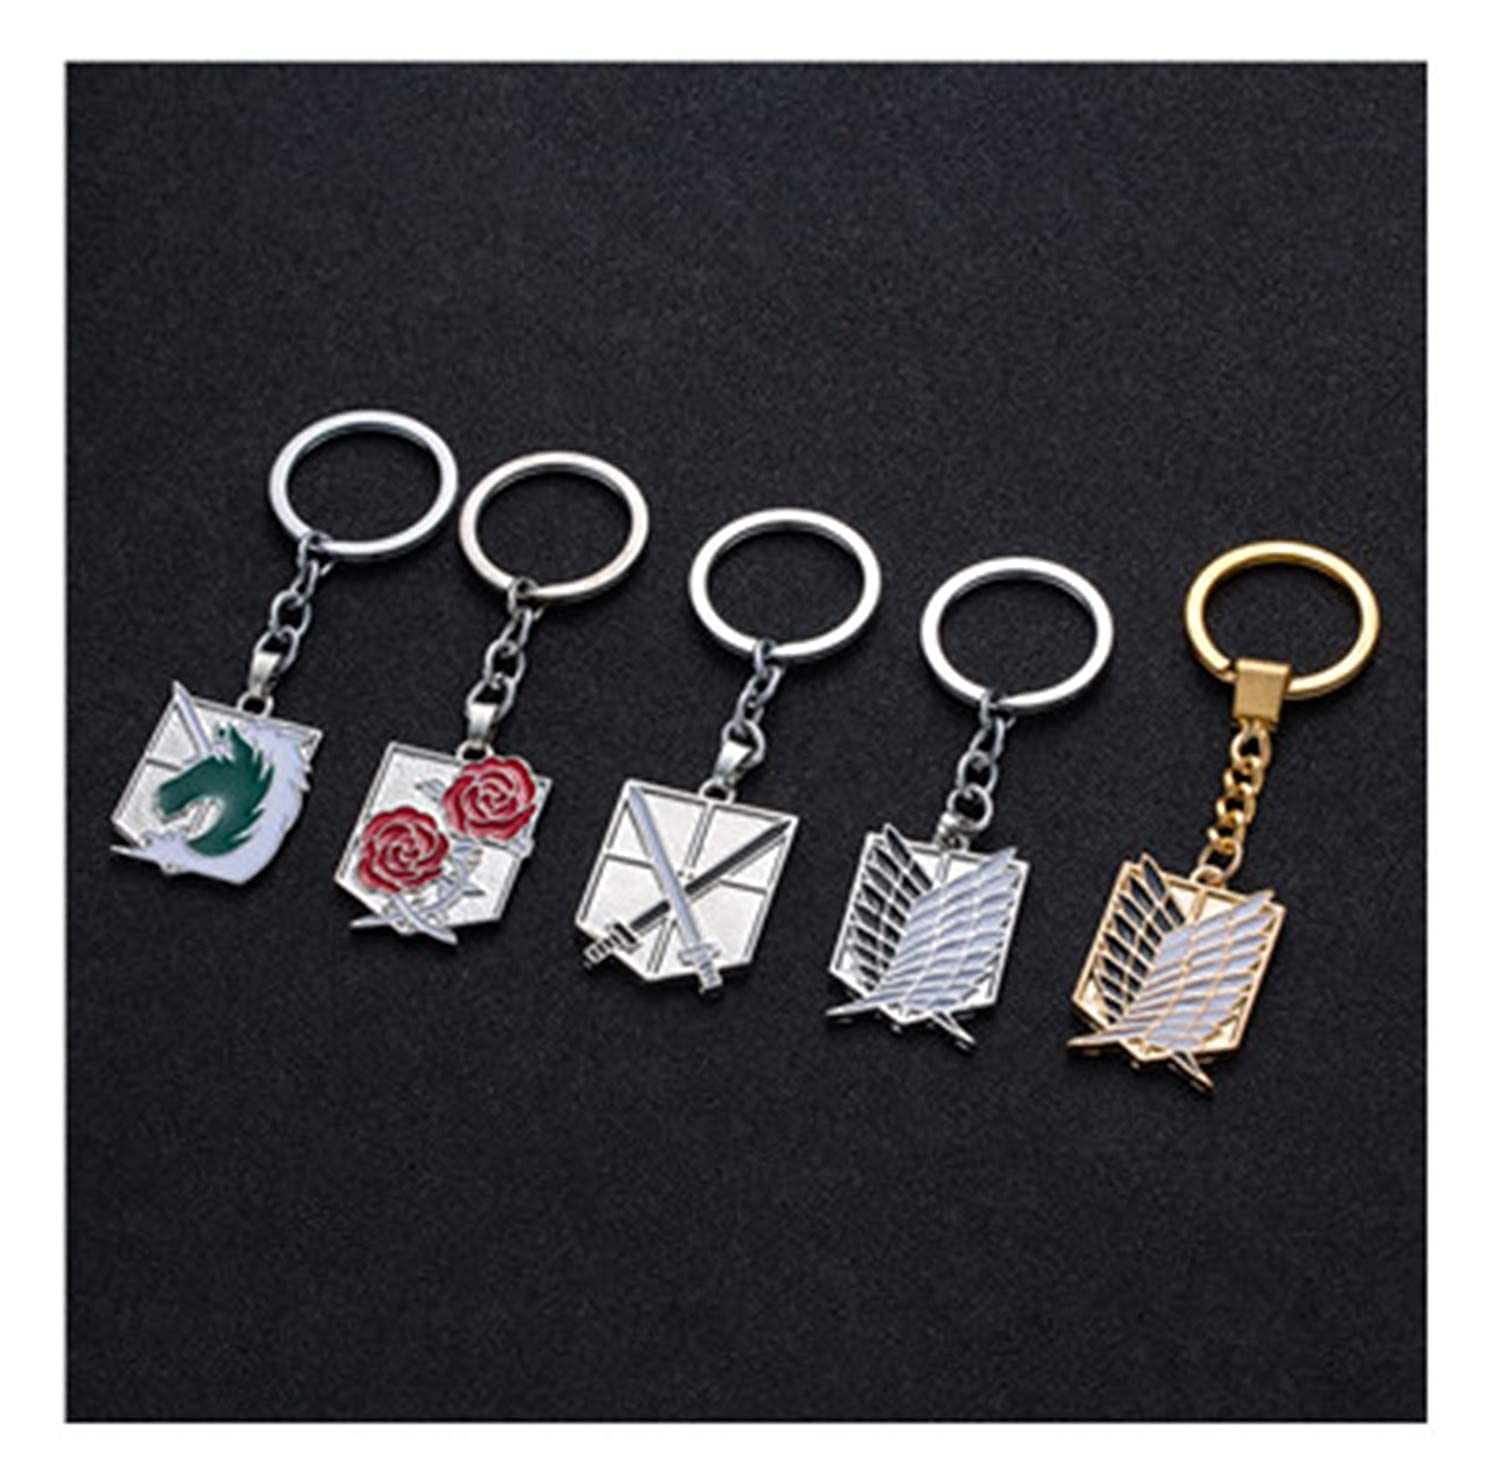 Amazon.com: Anime Keychain Pendant Necklace Stainless Steel Key Chain Holder Cover Charms For Motorcycle Car Keys Badge 1: Clothing